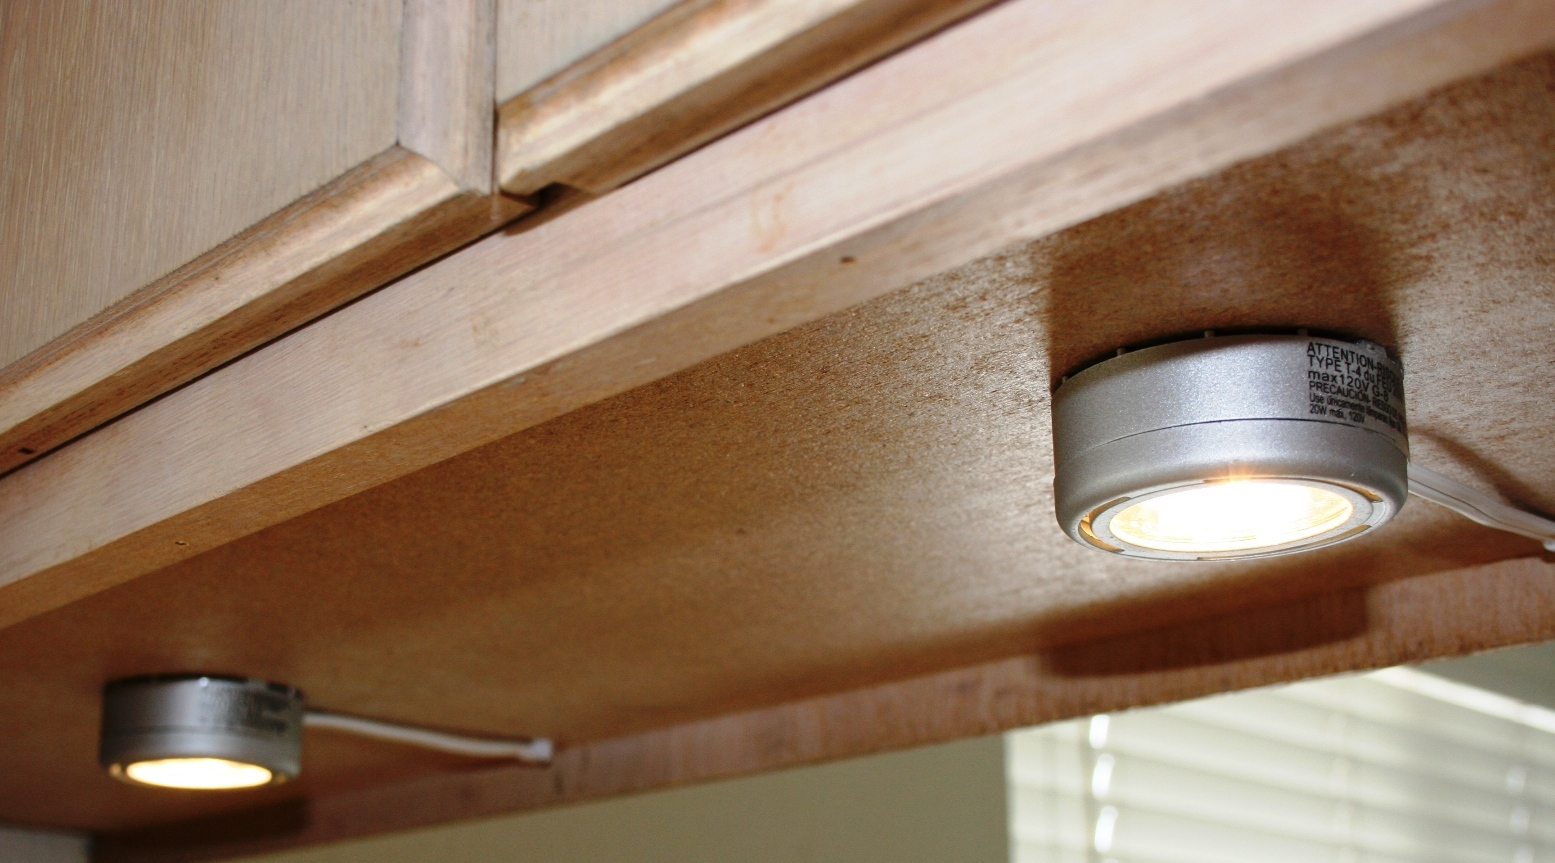 Installing Under Cabinet Lighting Pro Construction Guide